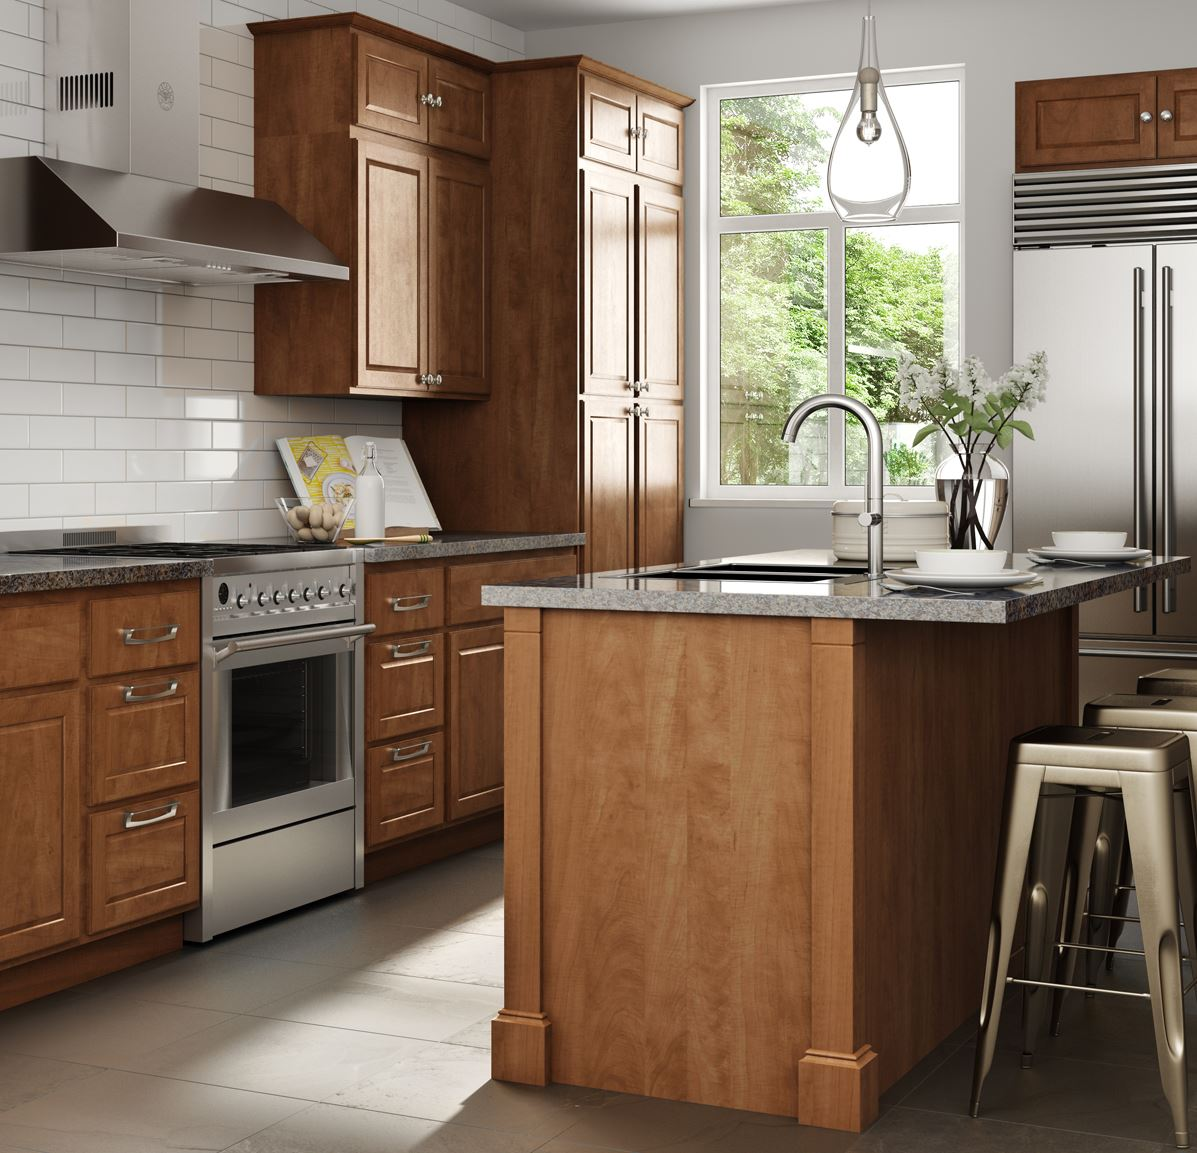 Furniture Kitchen Cabinets: Madison Base Cabinets In Cognac